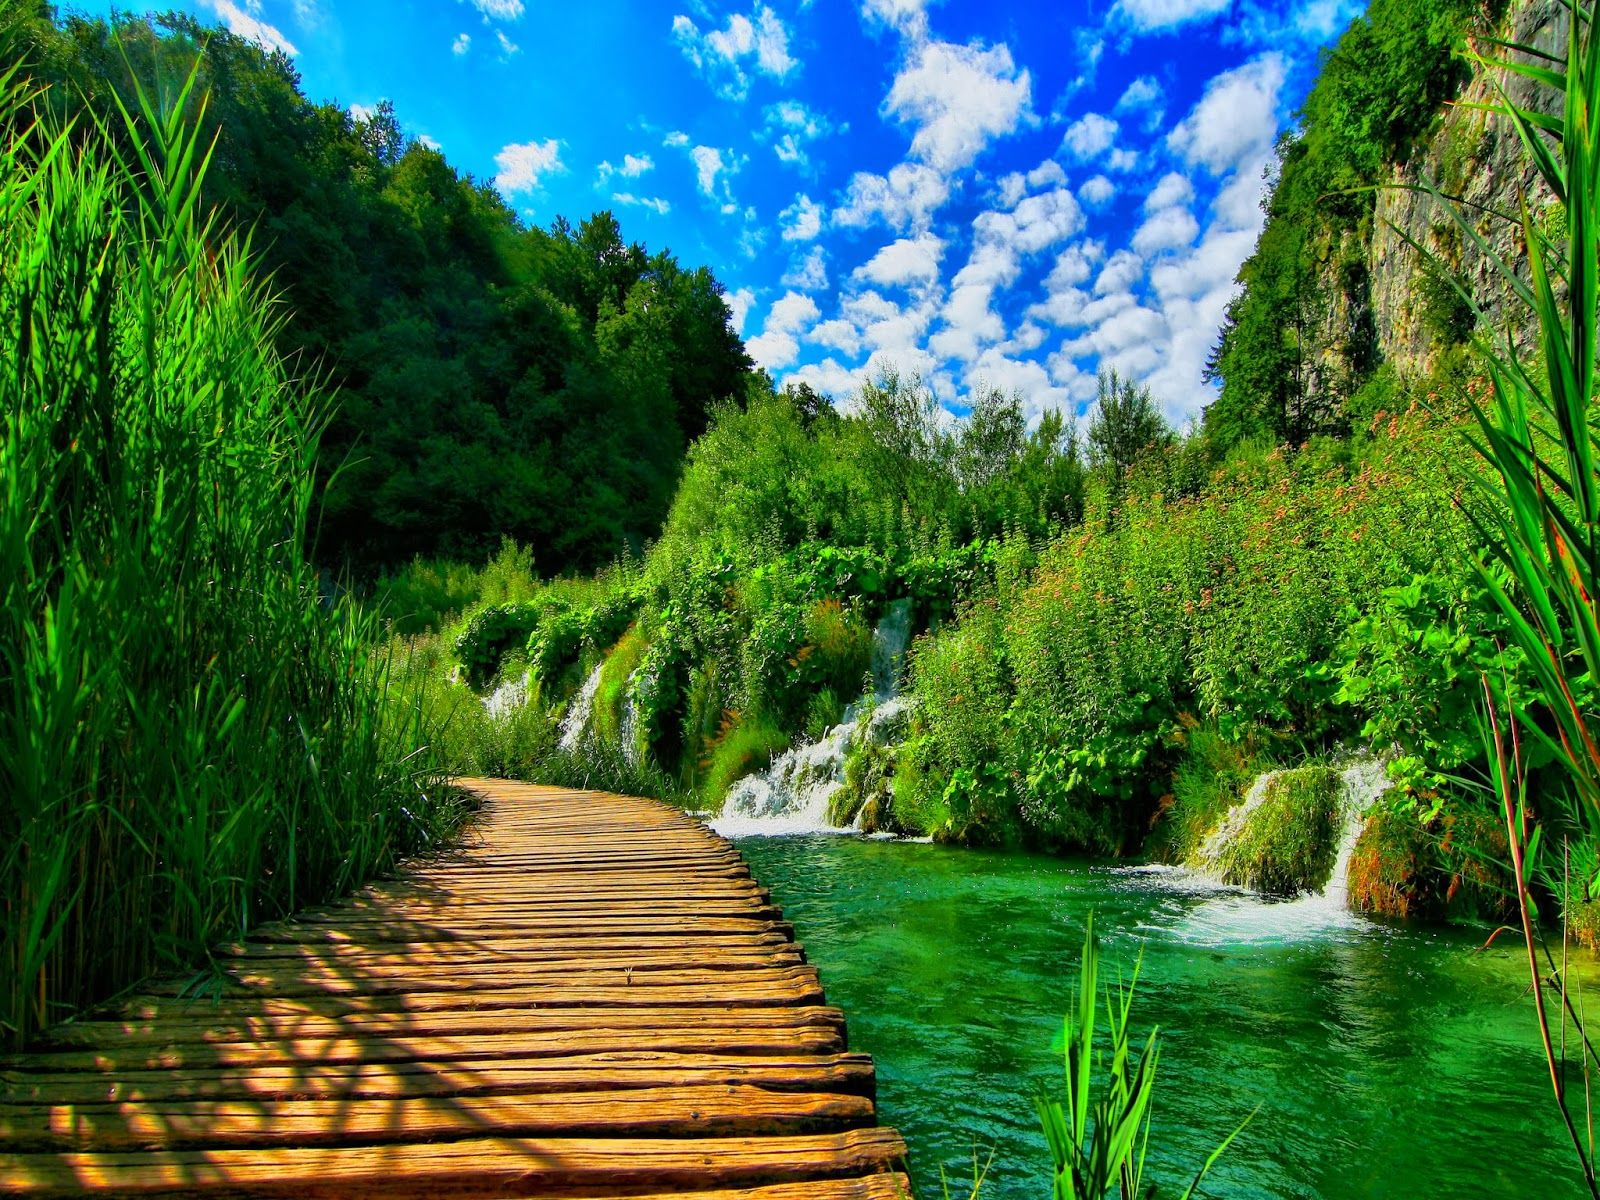 Outdoors Backgrounds Explore Hd Desktop And More